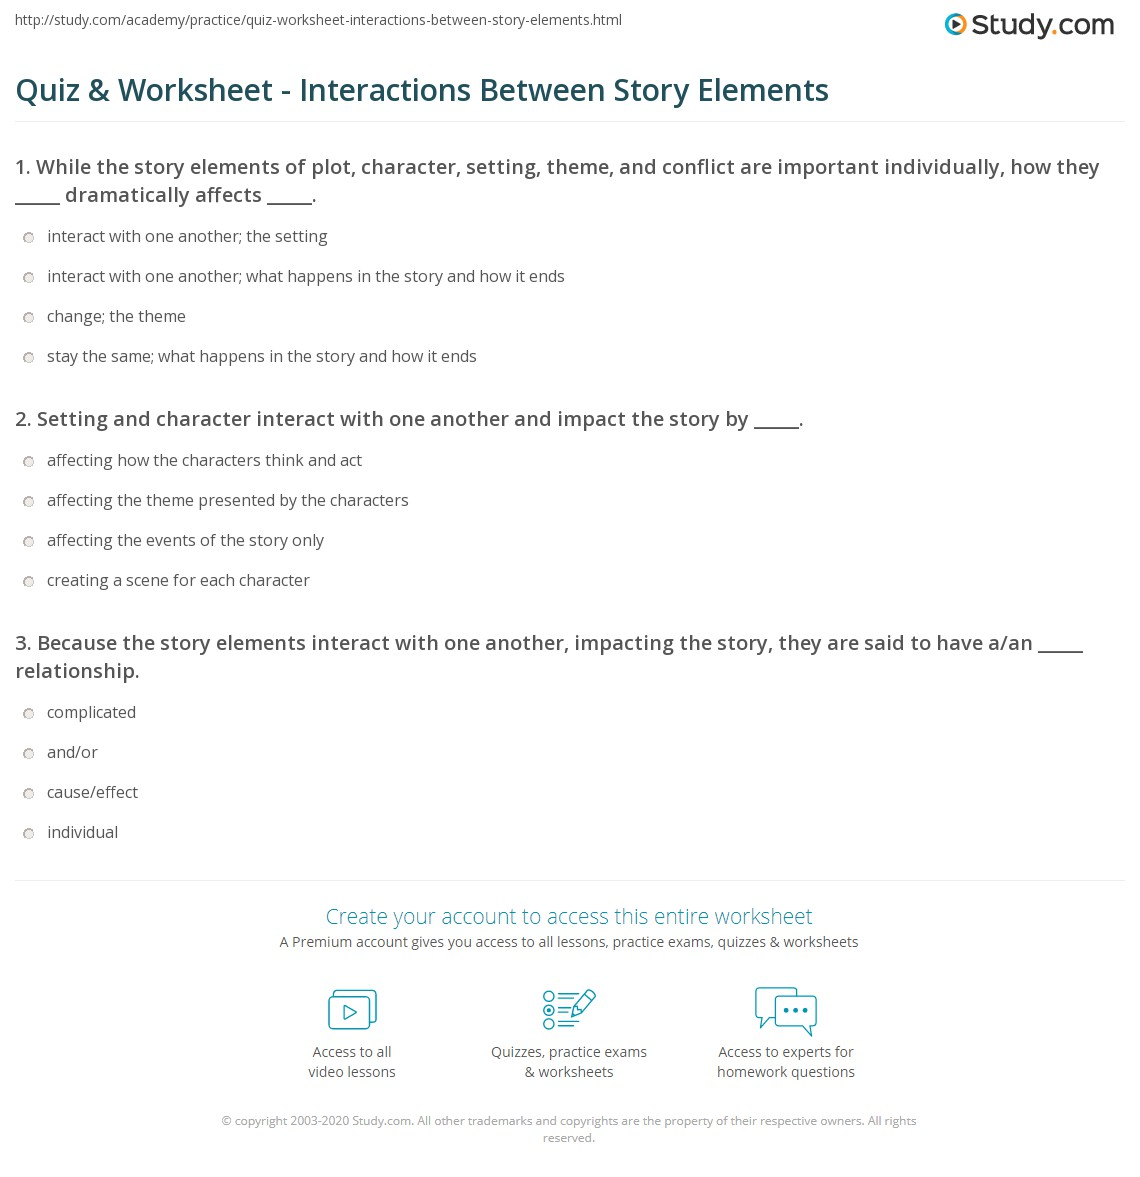 Worksheets Identifying Story Elements Worksheet quiz worksheet interactions between story elements study com print how interact shape one another worksheet